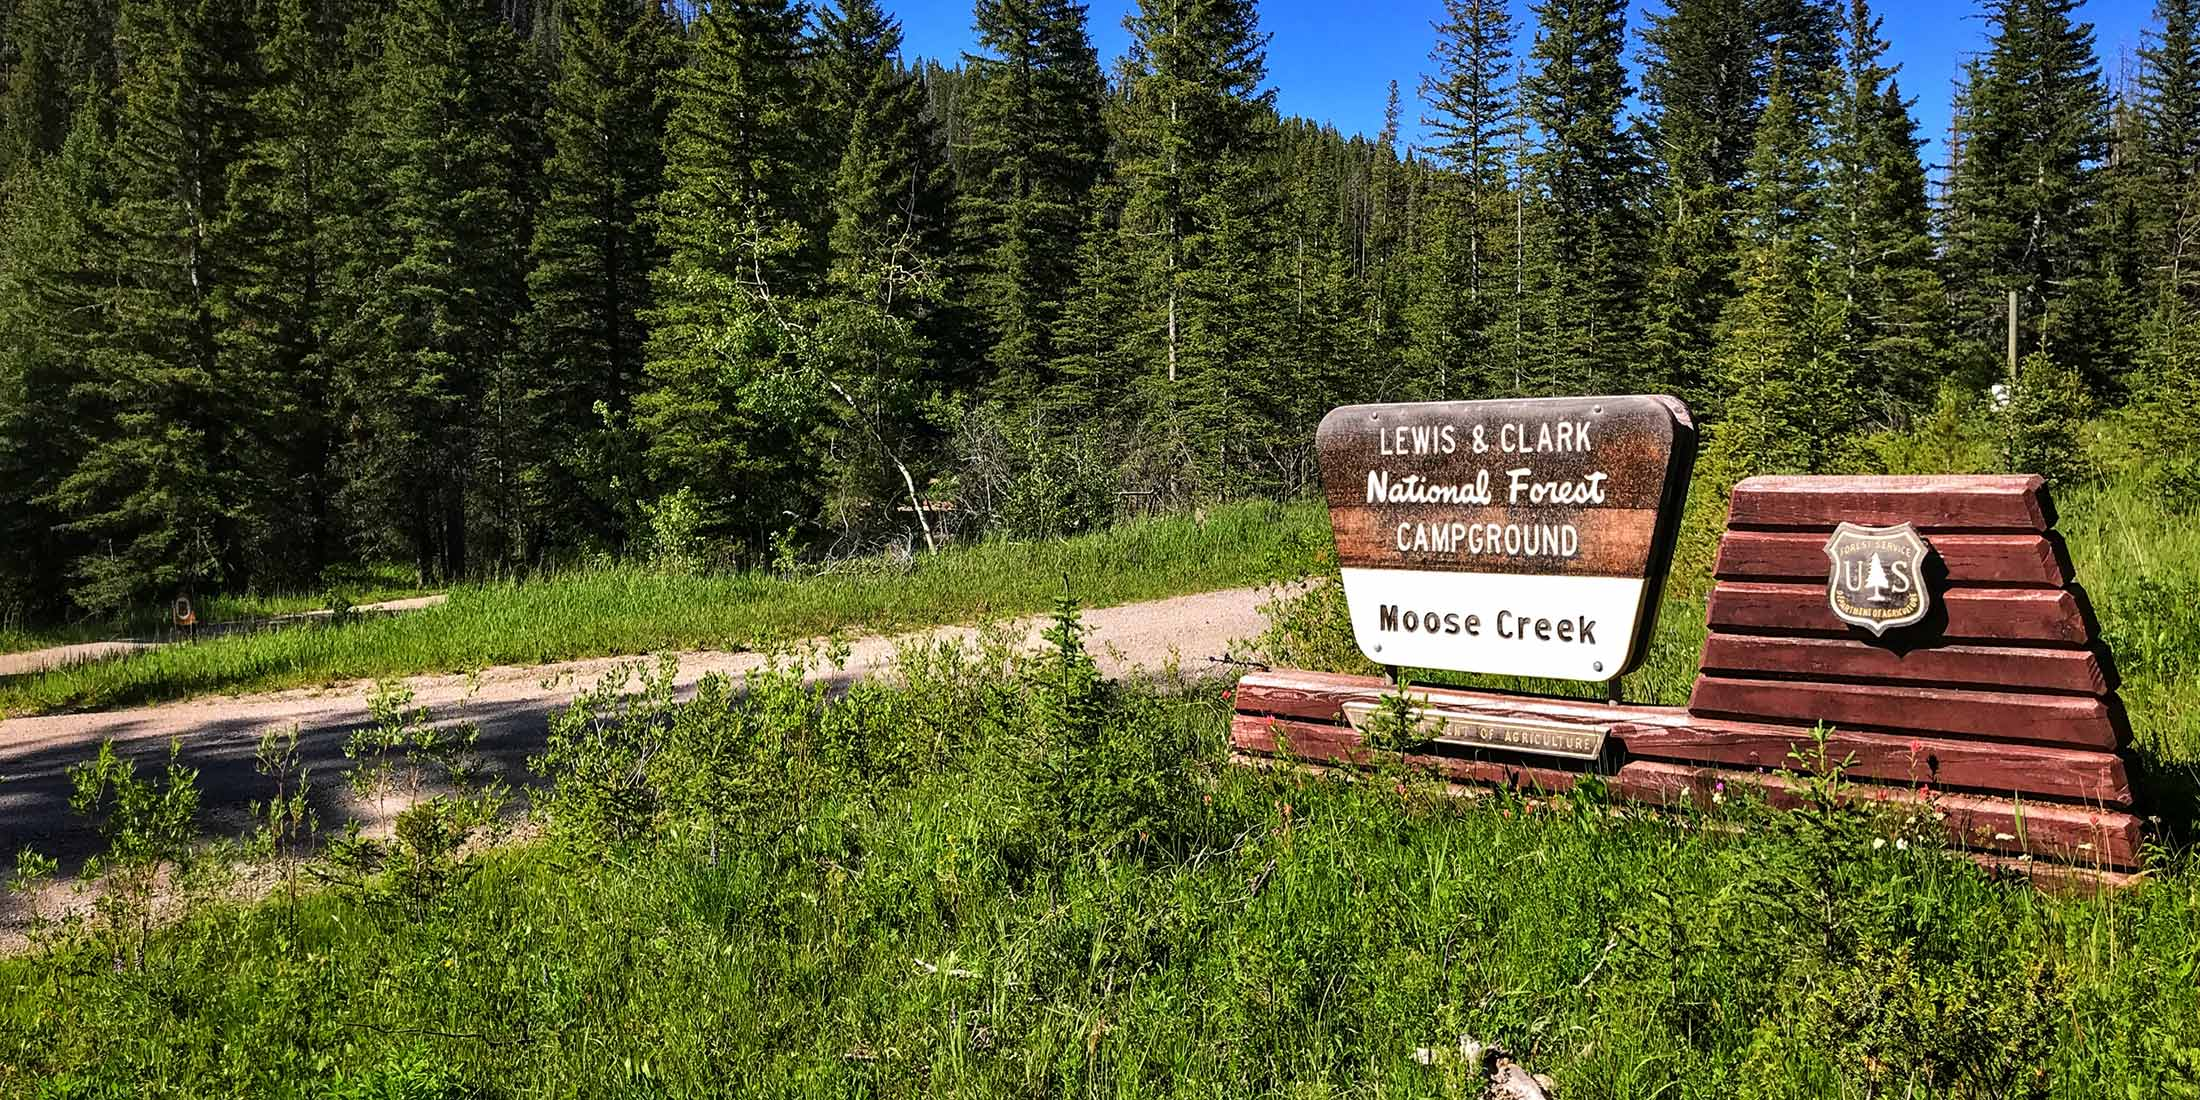 Information about Moose Creek Campground located in the Little Belt Mountain Range, Montana.